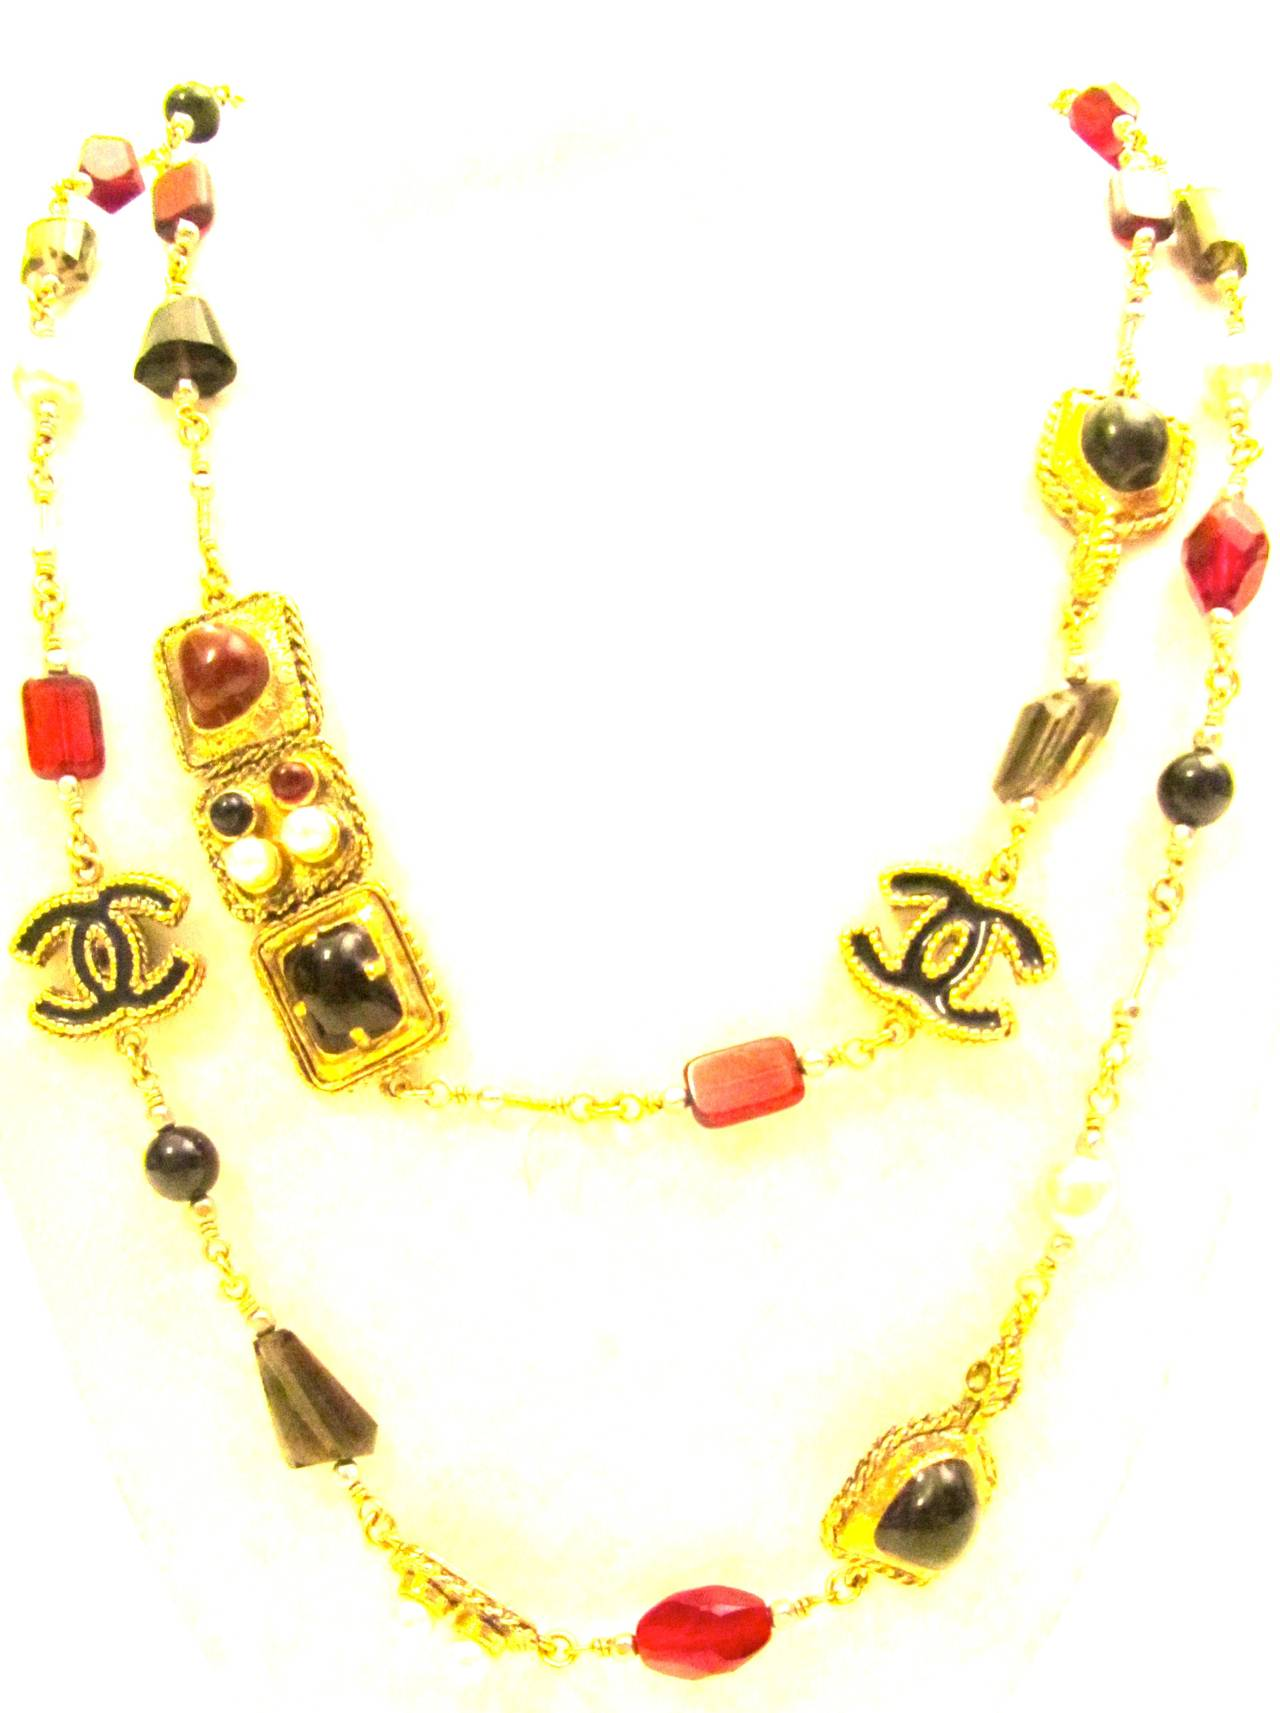 New Chanel necklace. Gold tone chain with faux pearls and alternating ornate gripoix stone inlay. Red, black, and gray gripoix stones. Black and gold CC logos on necklace. Rare and gorgeous necklace that is versatile for various occasions.